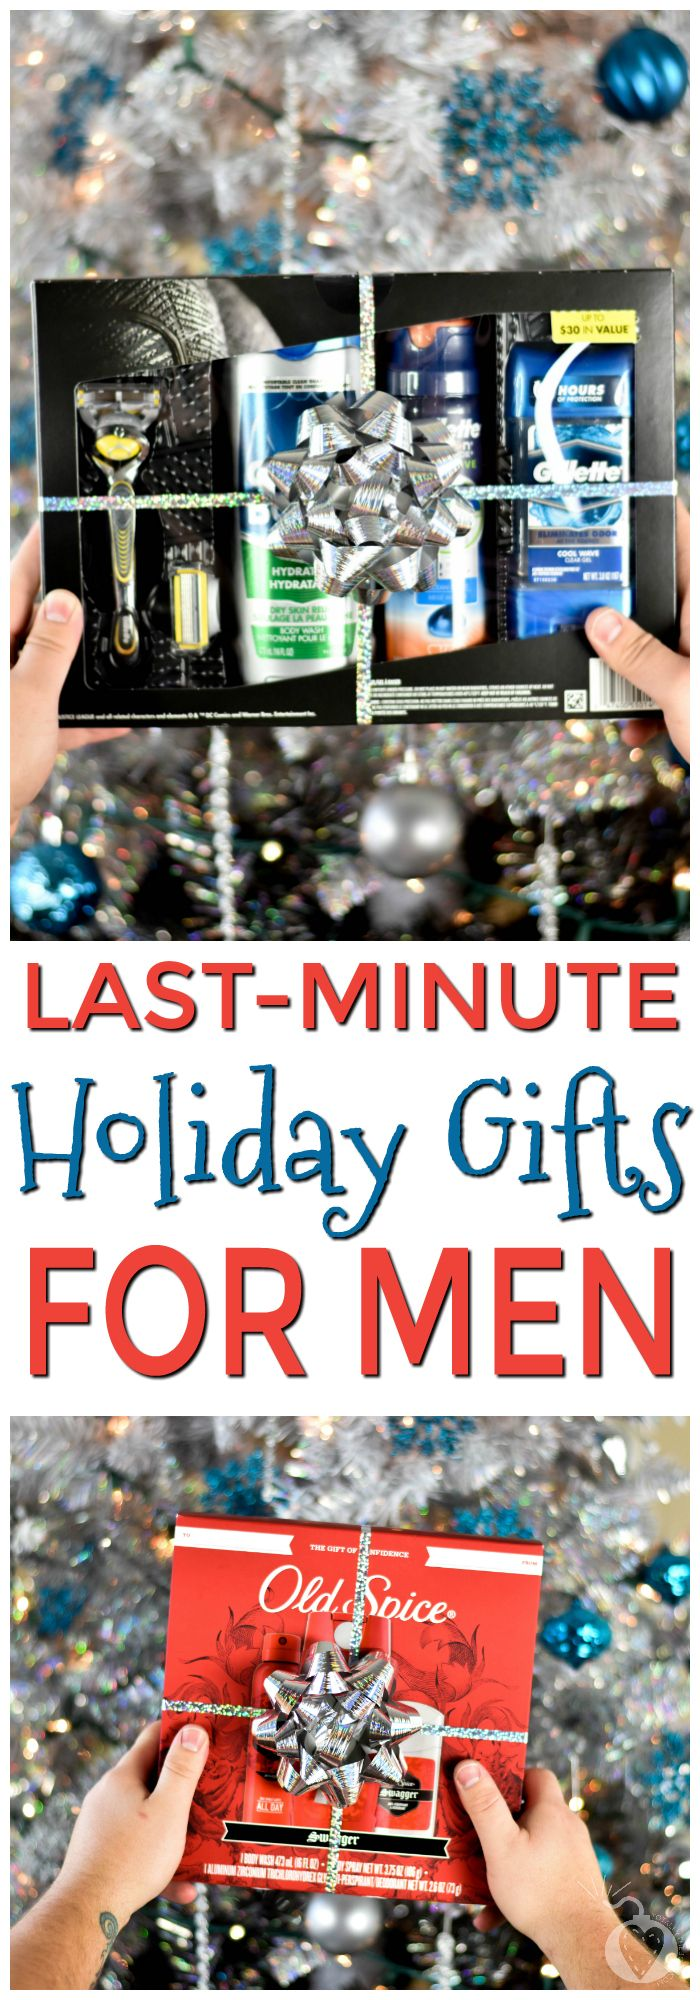 Last Minute Holiday Gifts For Men Ad Giftsforyourguy Oldspice Walmart